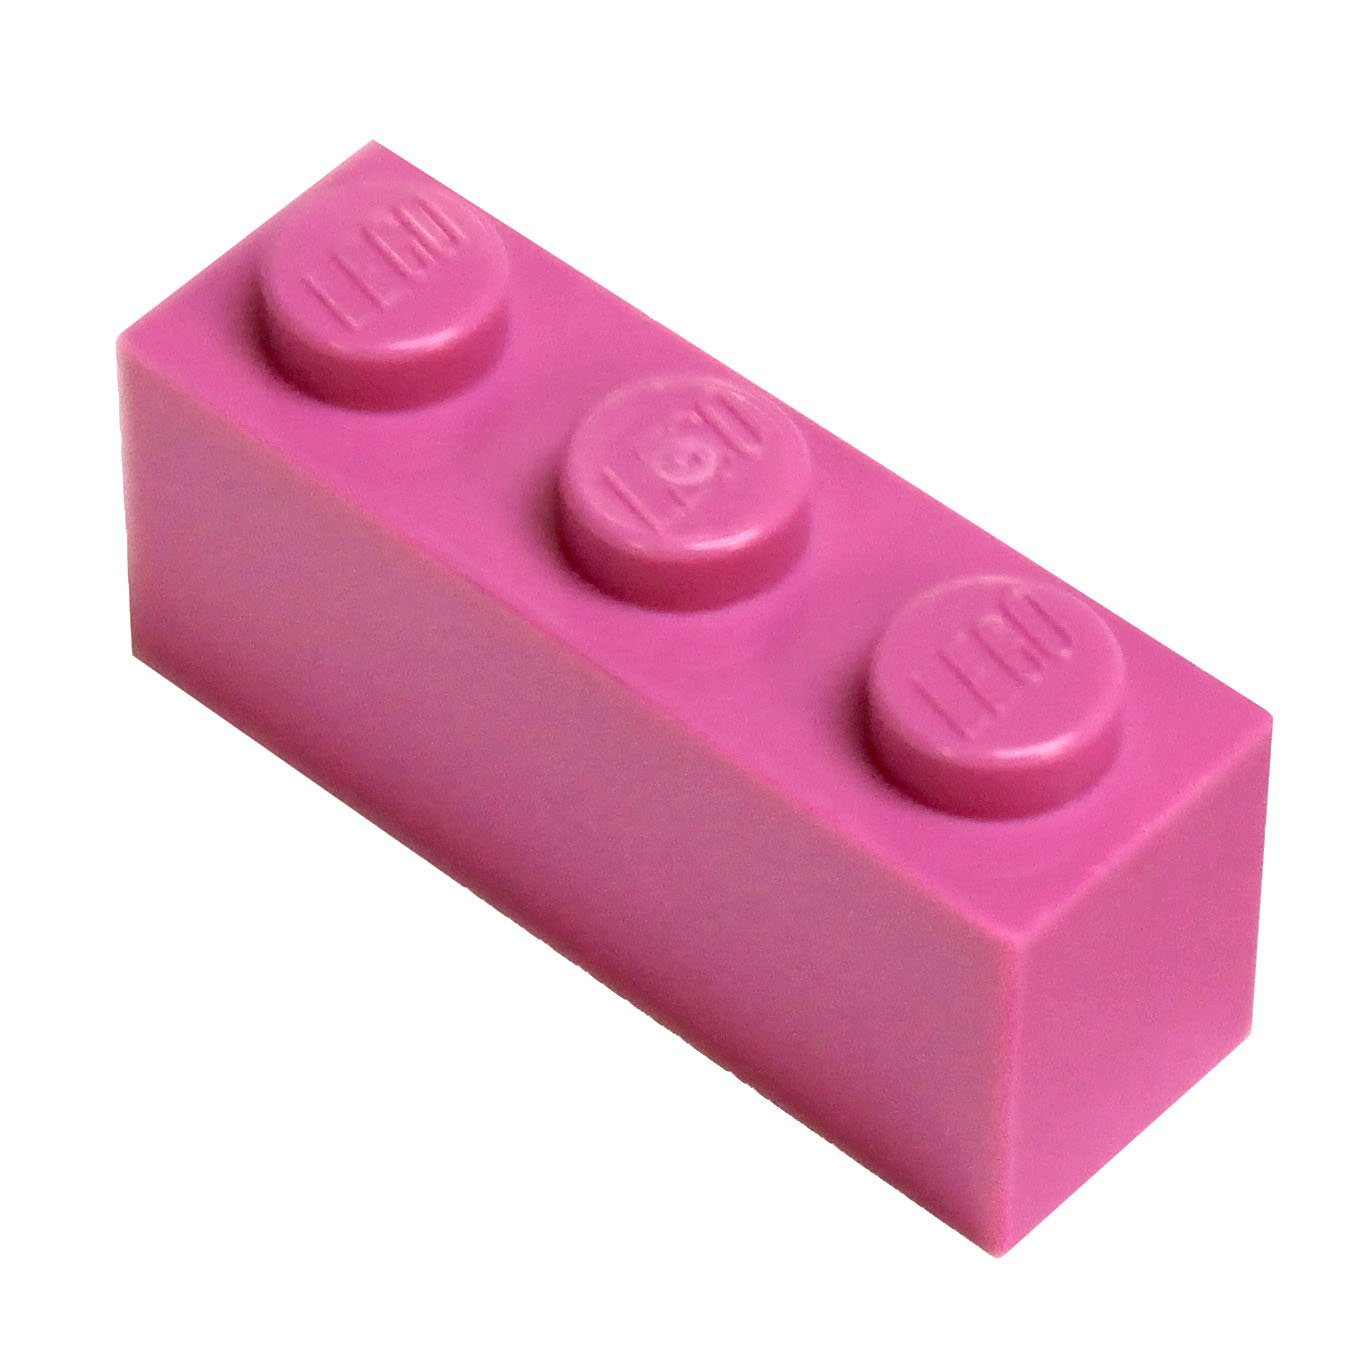 NEW LEGO Dark Pink 1X3 Bricks Lot of 50 Pieces 3622 Building Parts